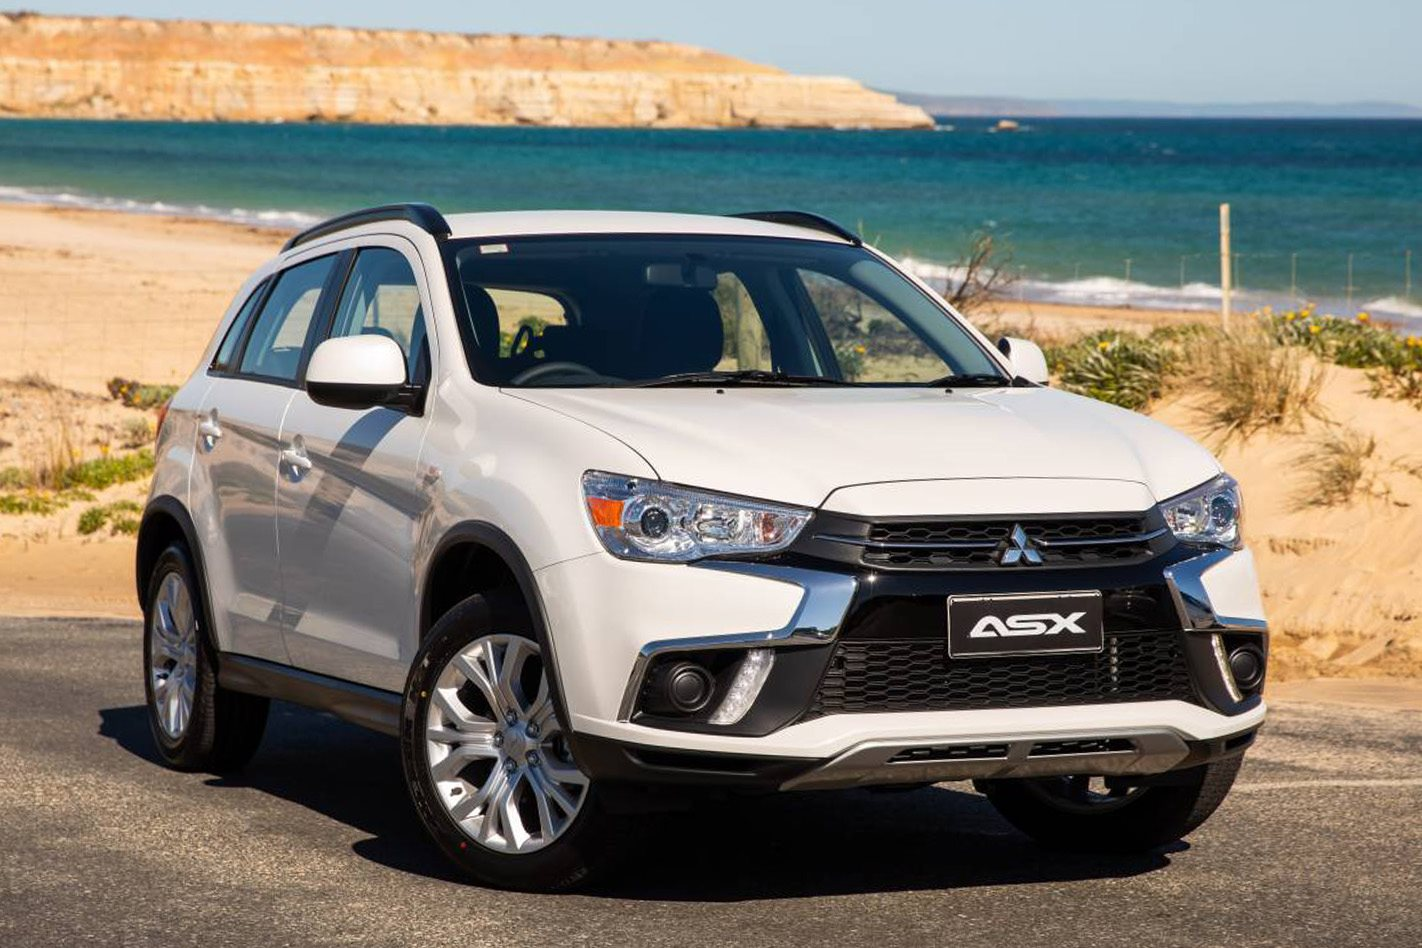 2019 Mitsubishi ASX Price And Features Announced